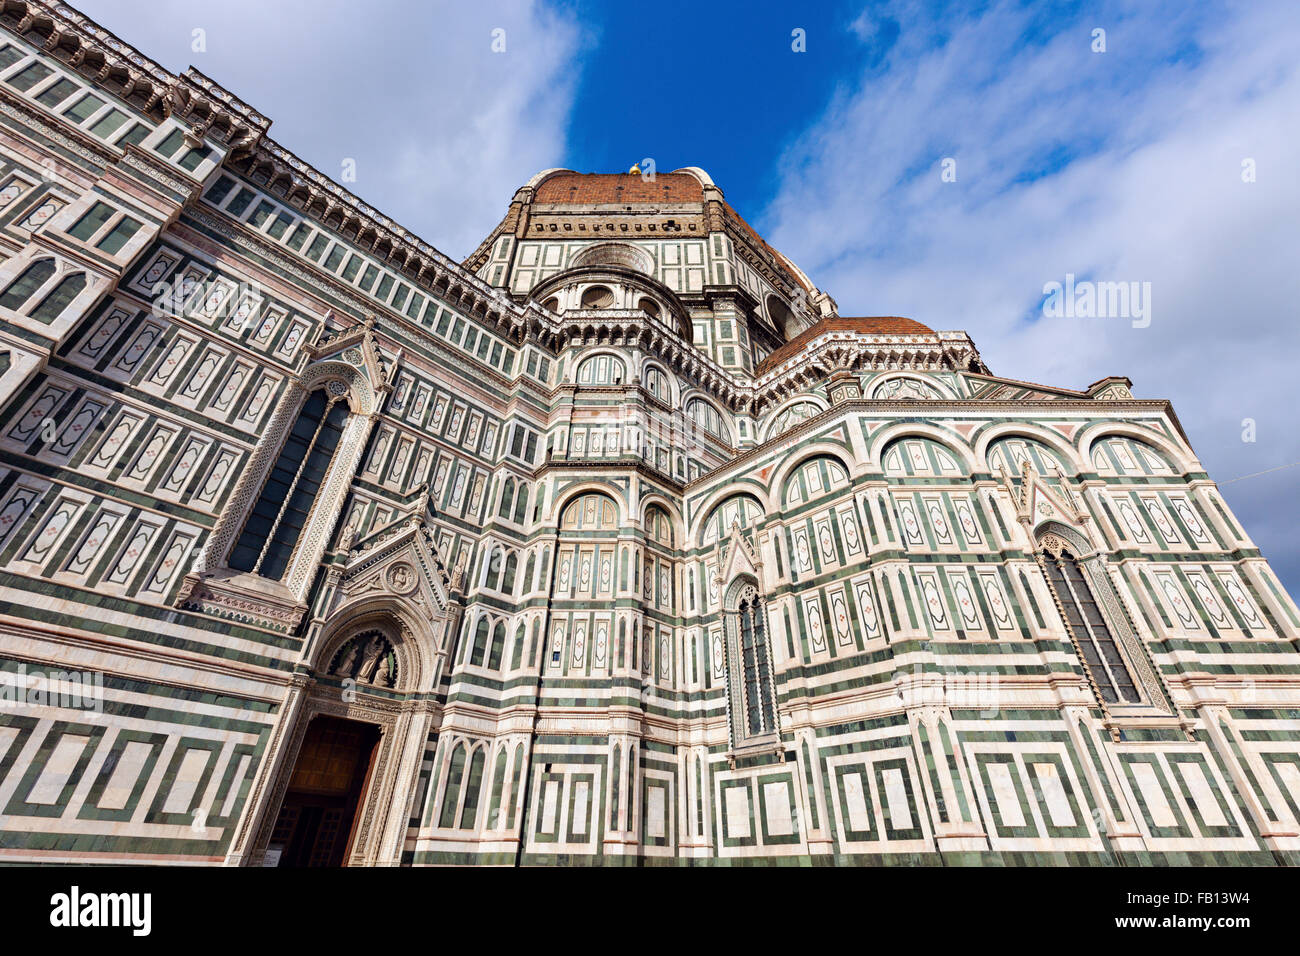 Low-angle view of Duomo Santa Maria Del Fiore - Stock Image